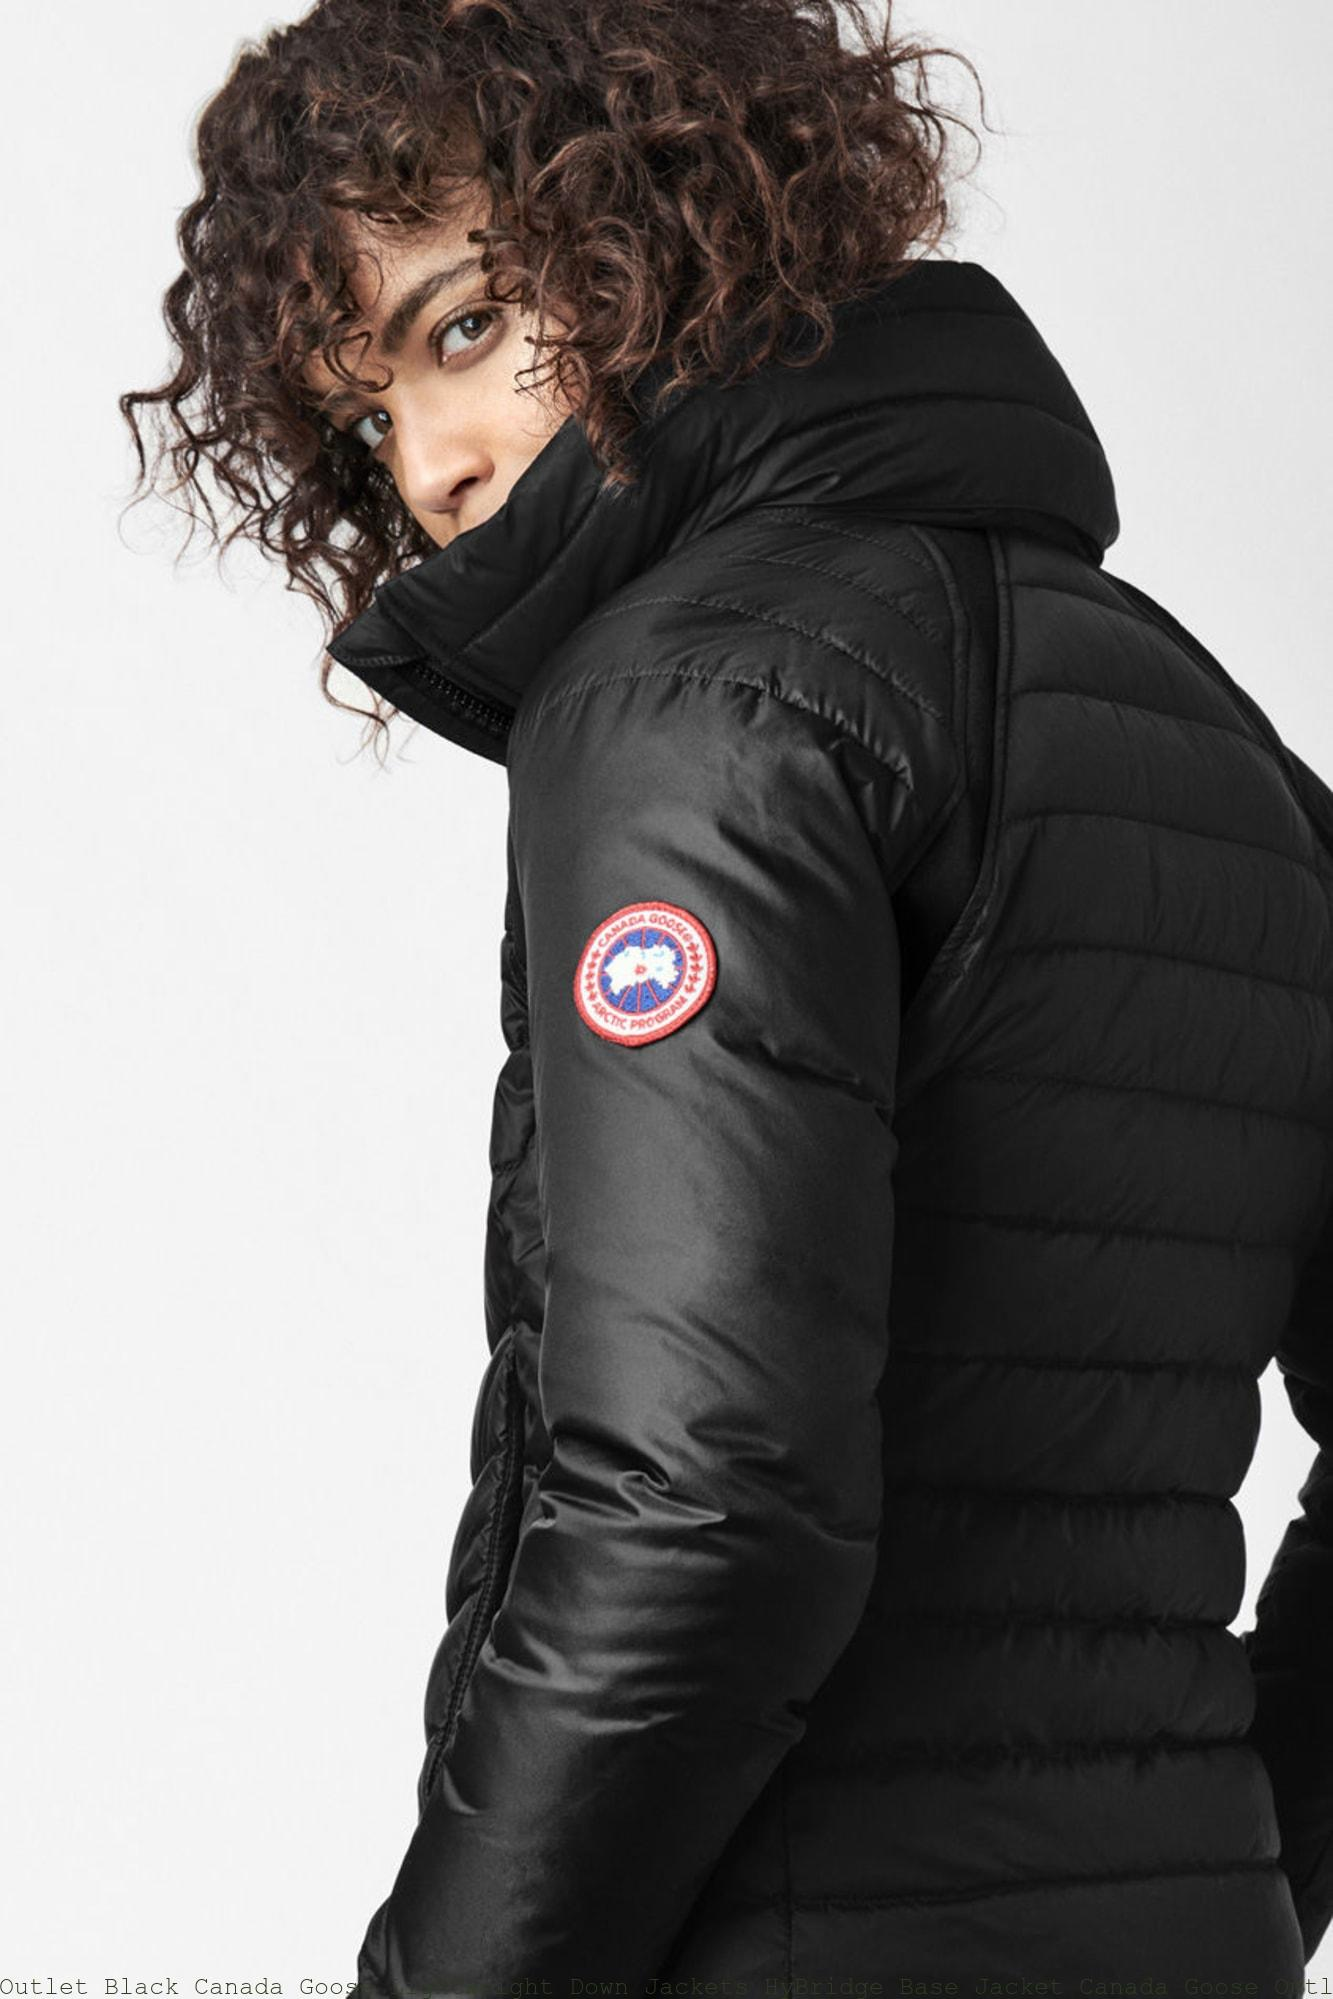 c21af54b0 Outlet Black Canada Goose Lightweight Down Jackets HyBridge Base Jacket  Canada Goose Outlet Store New York 2729L